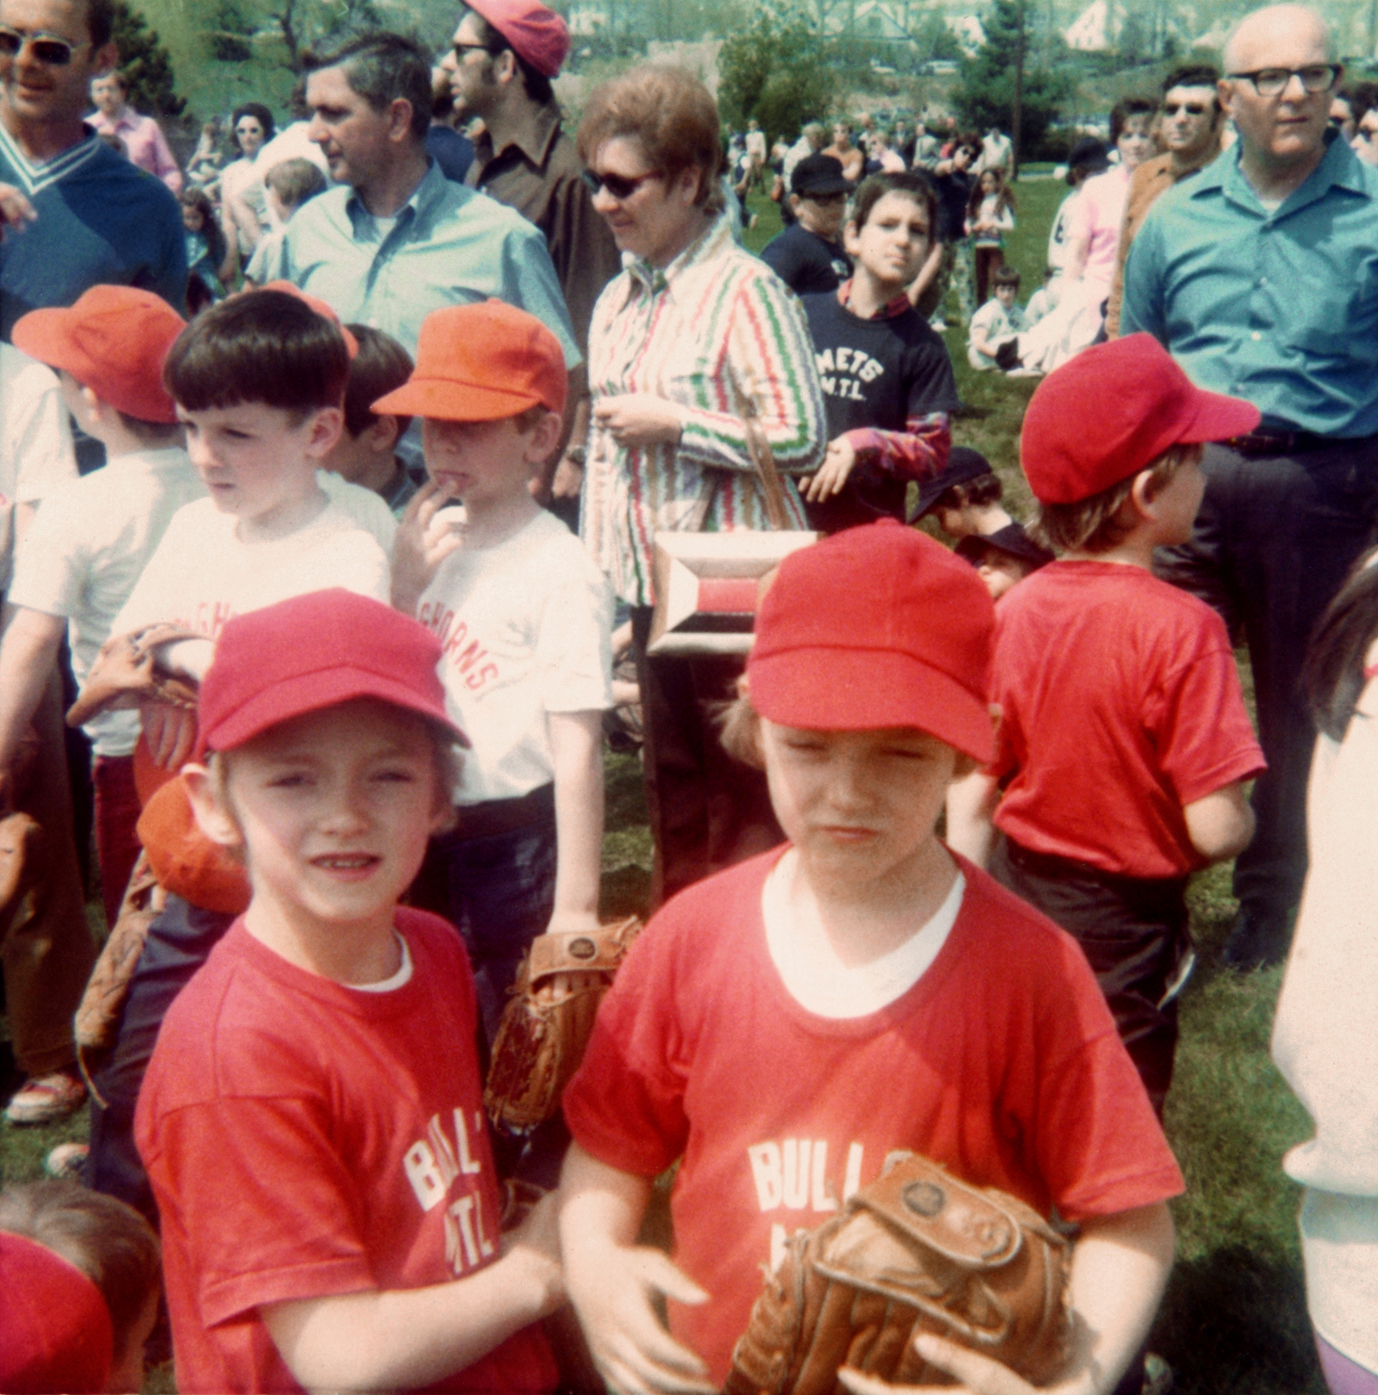 At age 7, Scott, right, was the pitcher and Mark played second base in 1971.